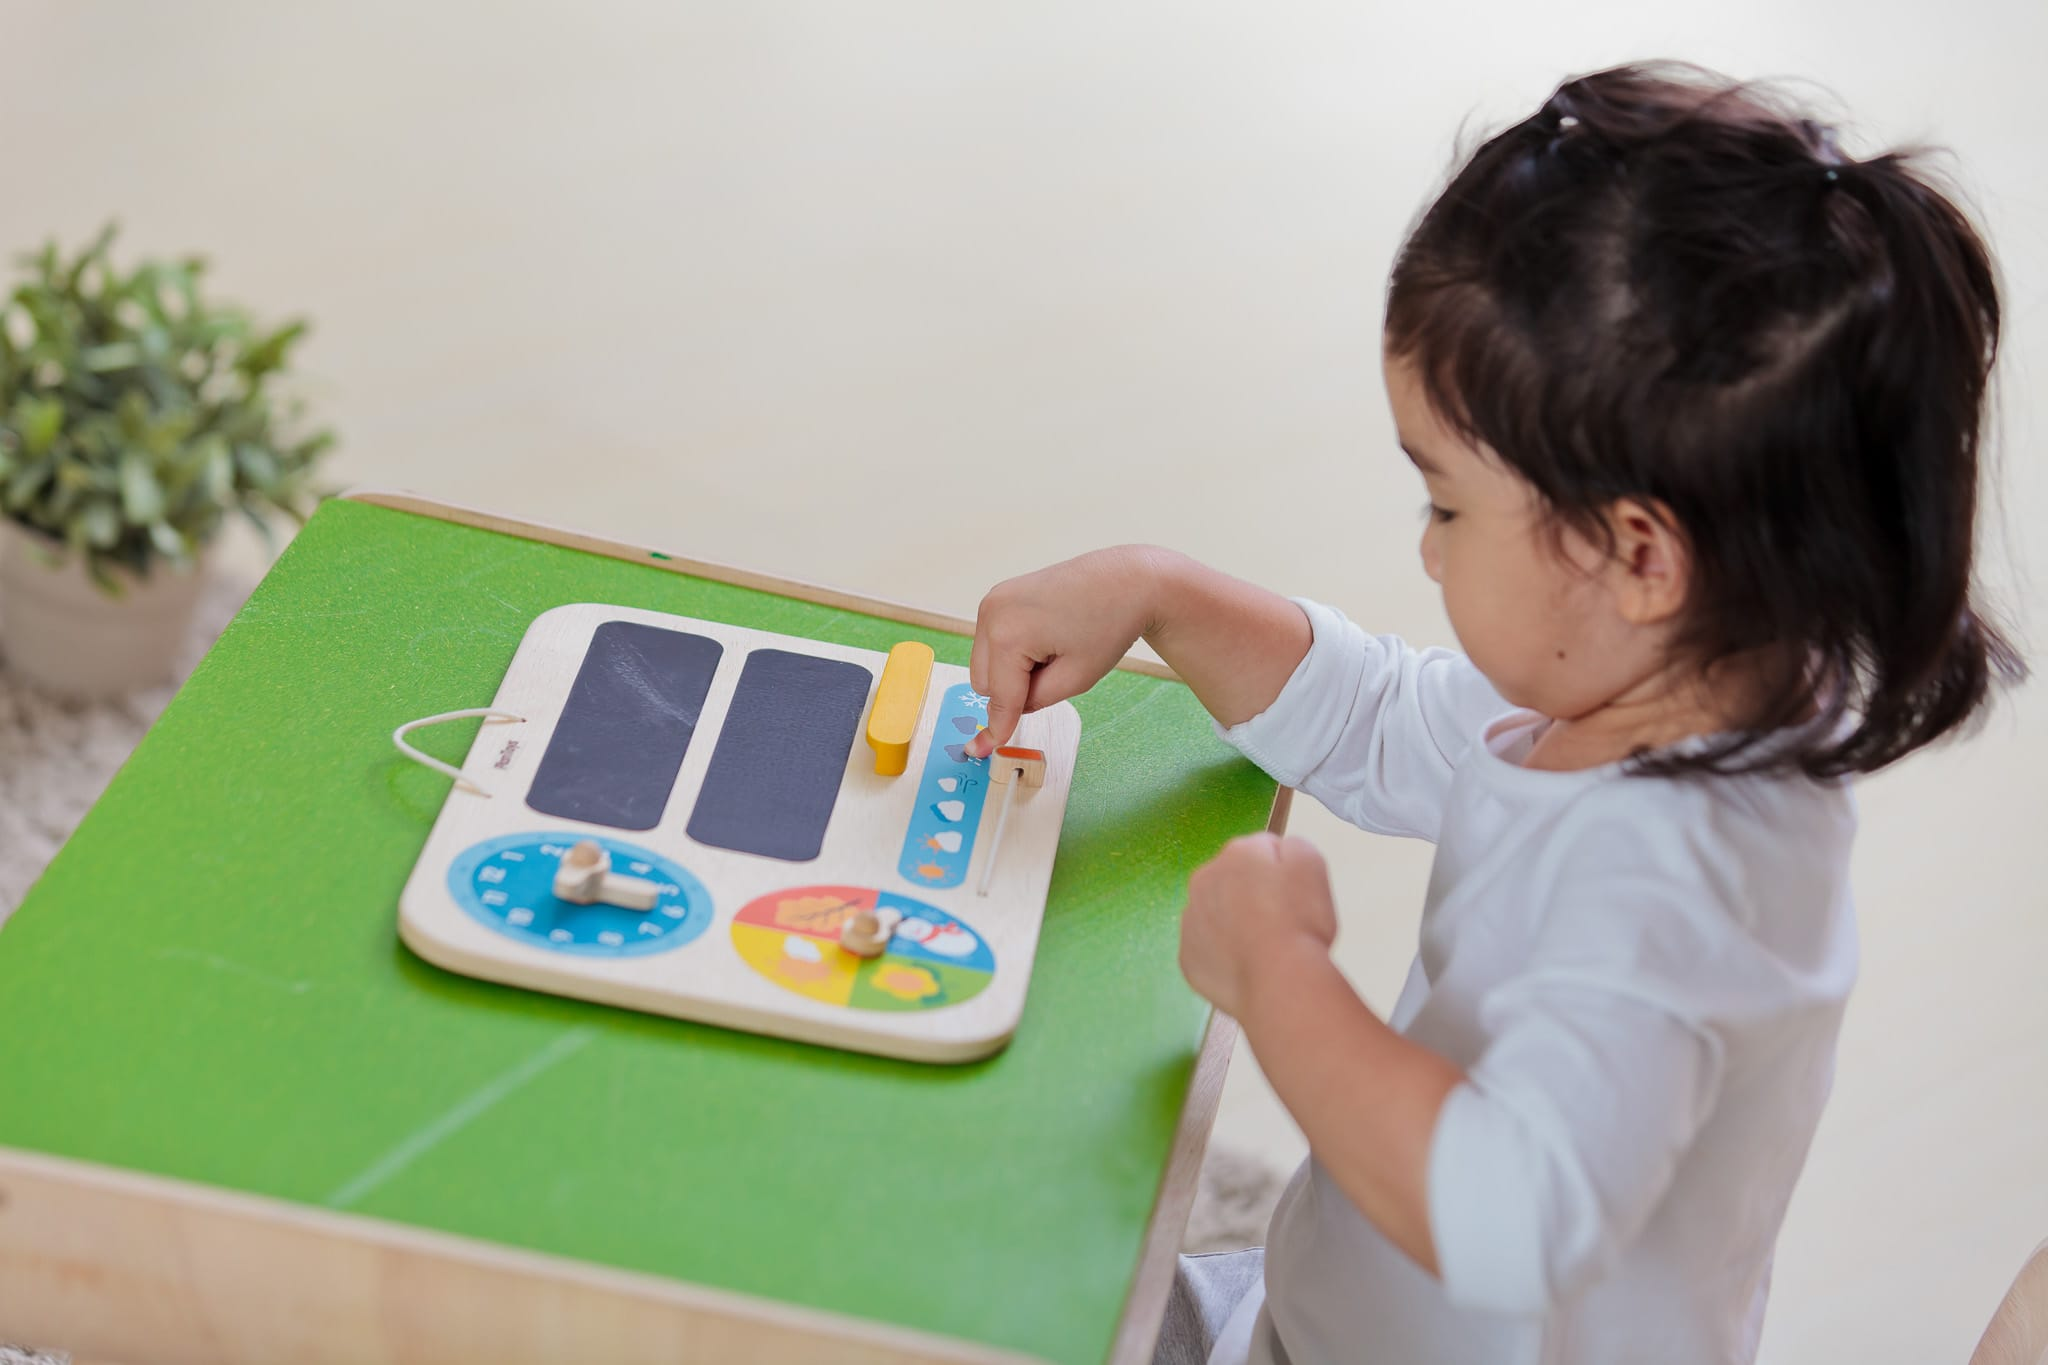 5359_PlanToys_MY_FIRST_CALENDAR_Learning_and_Education_Mathematical_Language_and_Communications_Explore_Fine_Motor_3yrs_Wooden_toys_Education_toys_Safety_Toys_Non-toxic_7.jpg